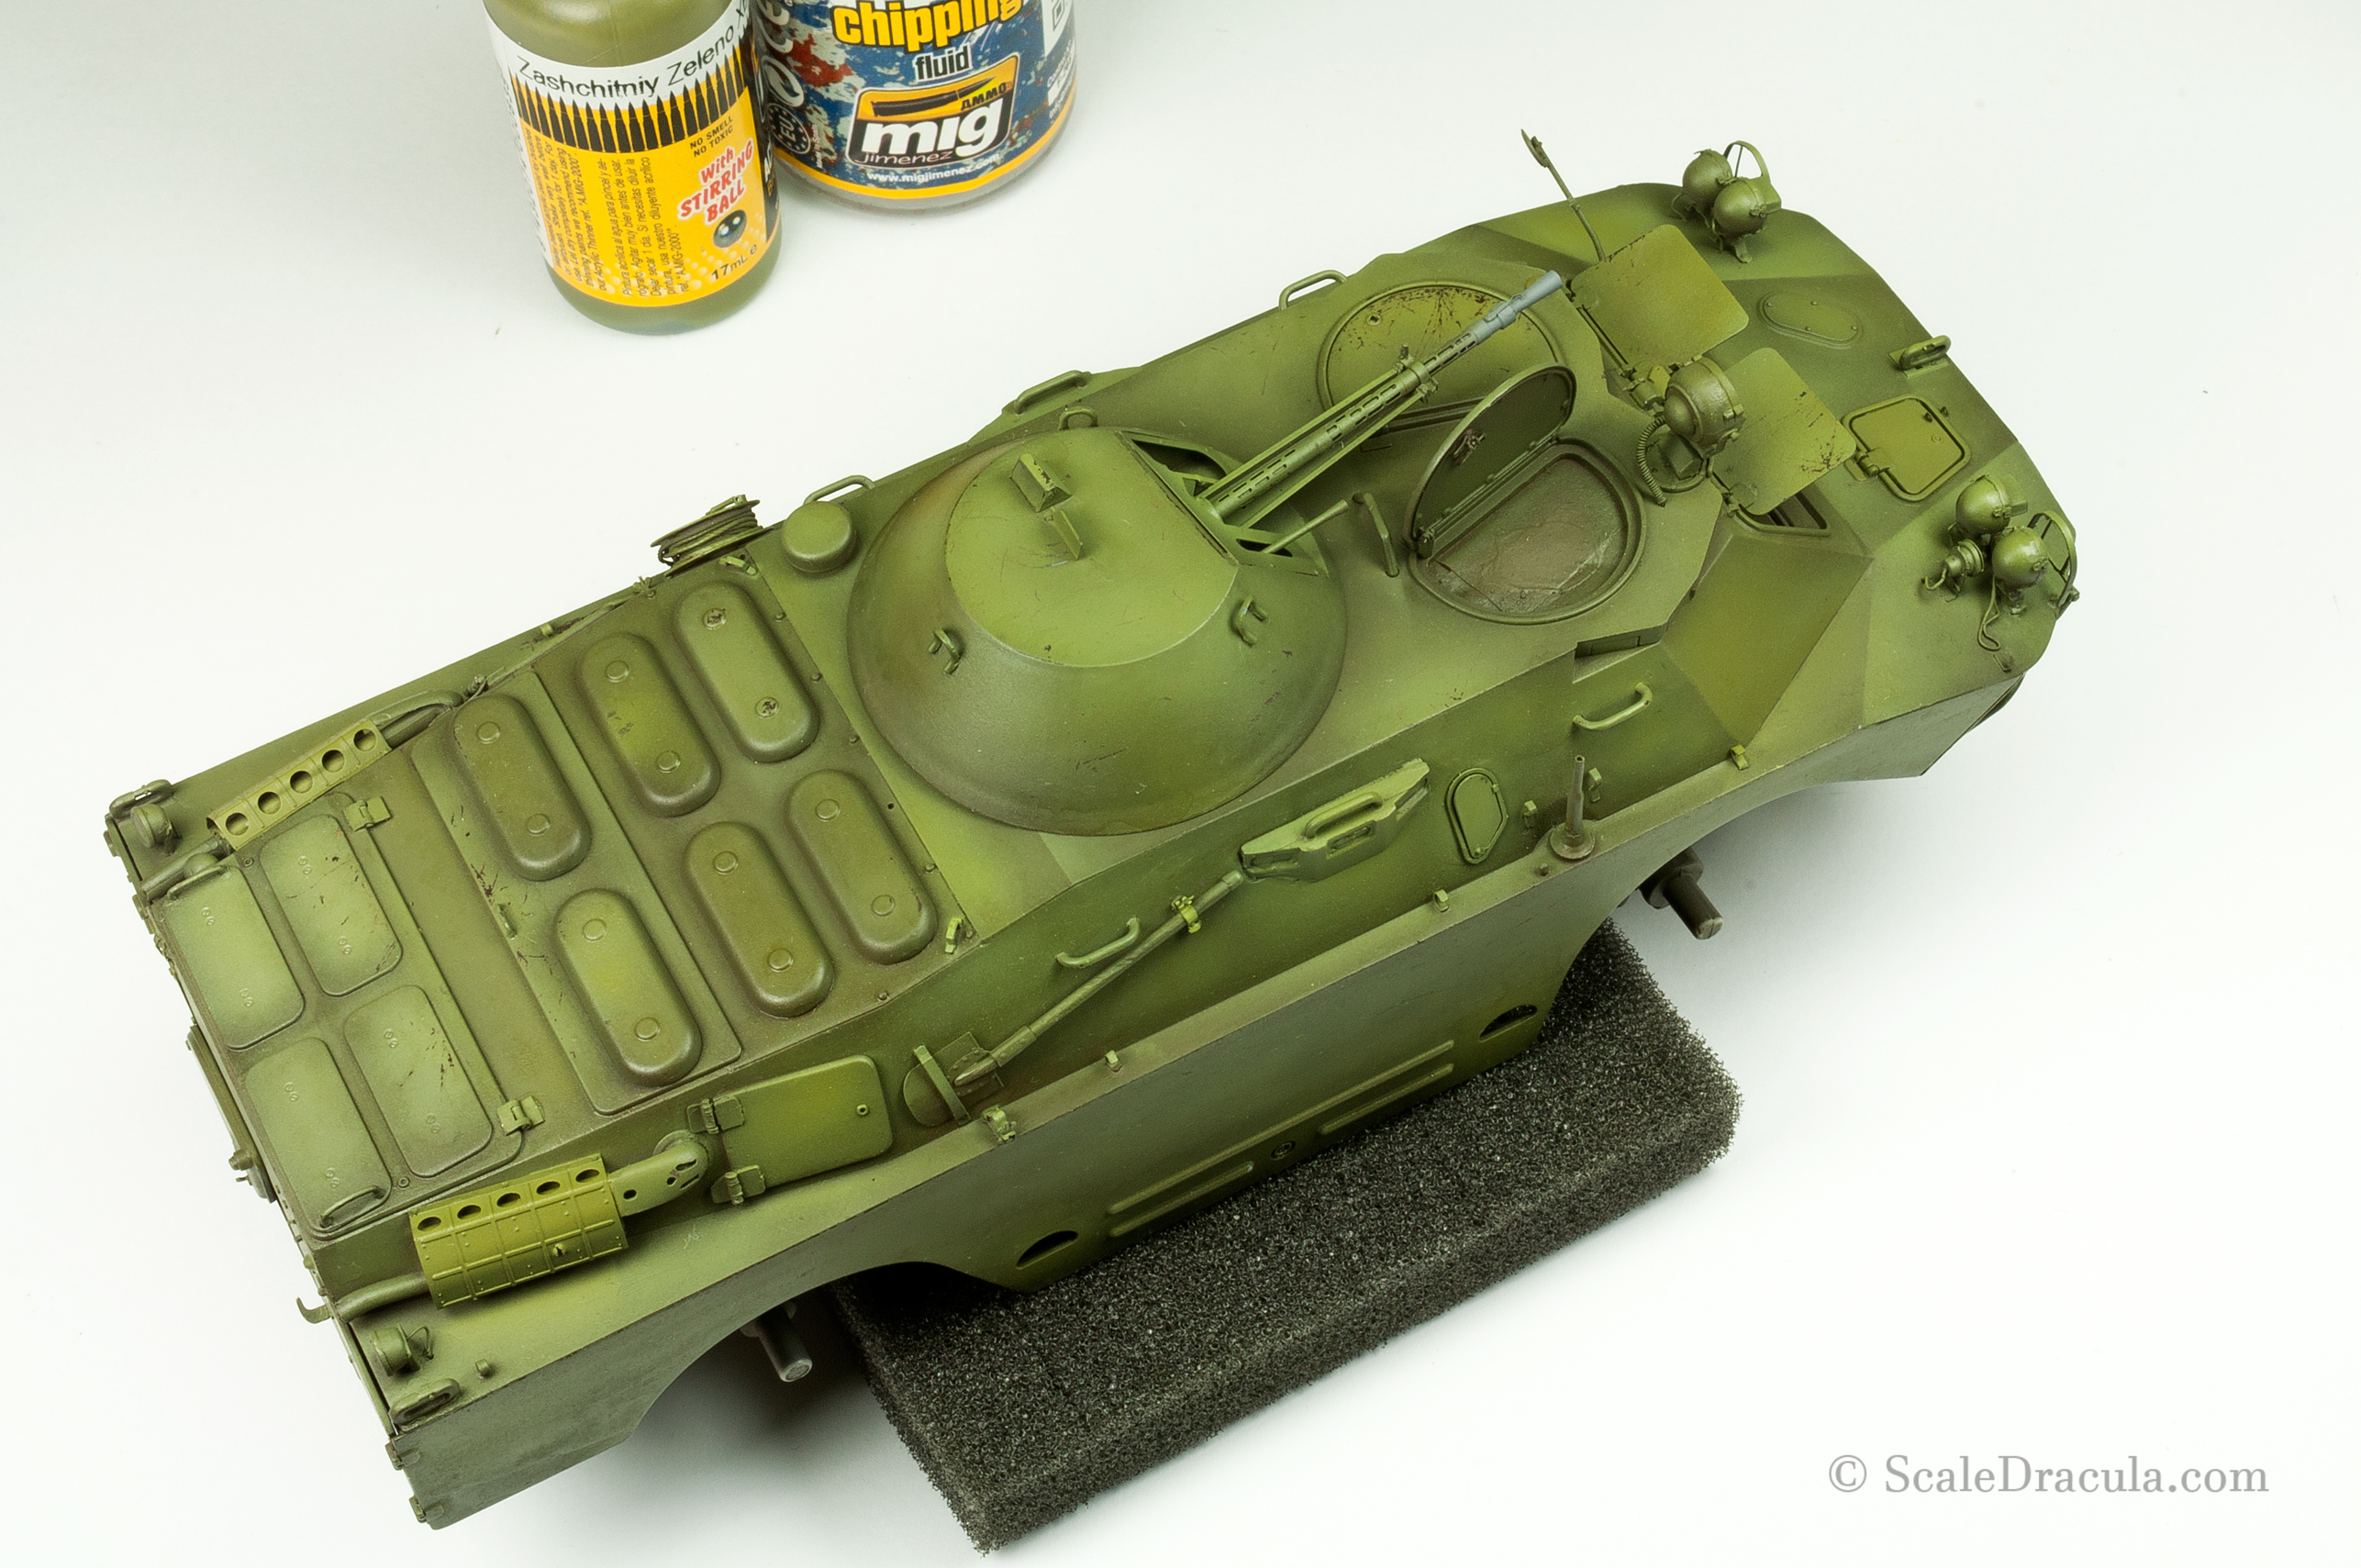 Model after chipping and modulation, BRDM-2 by Trumpeter